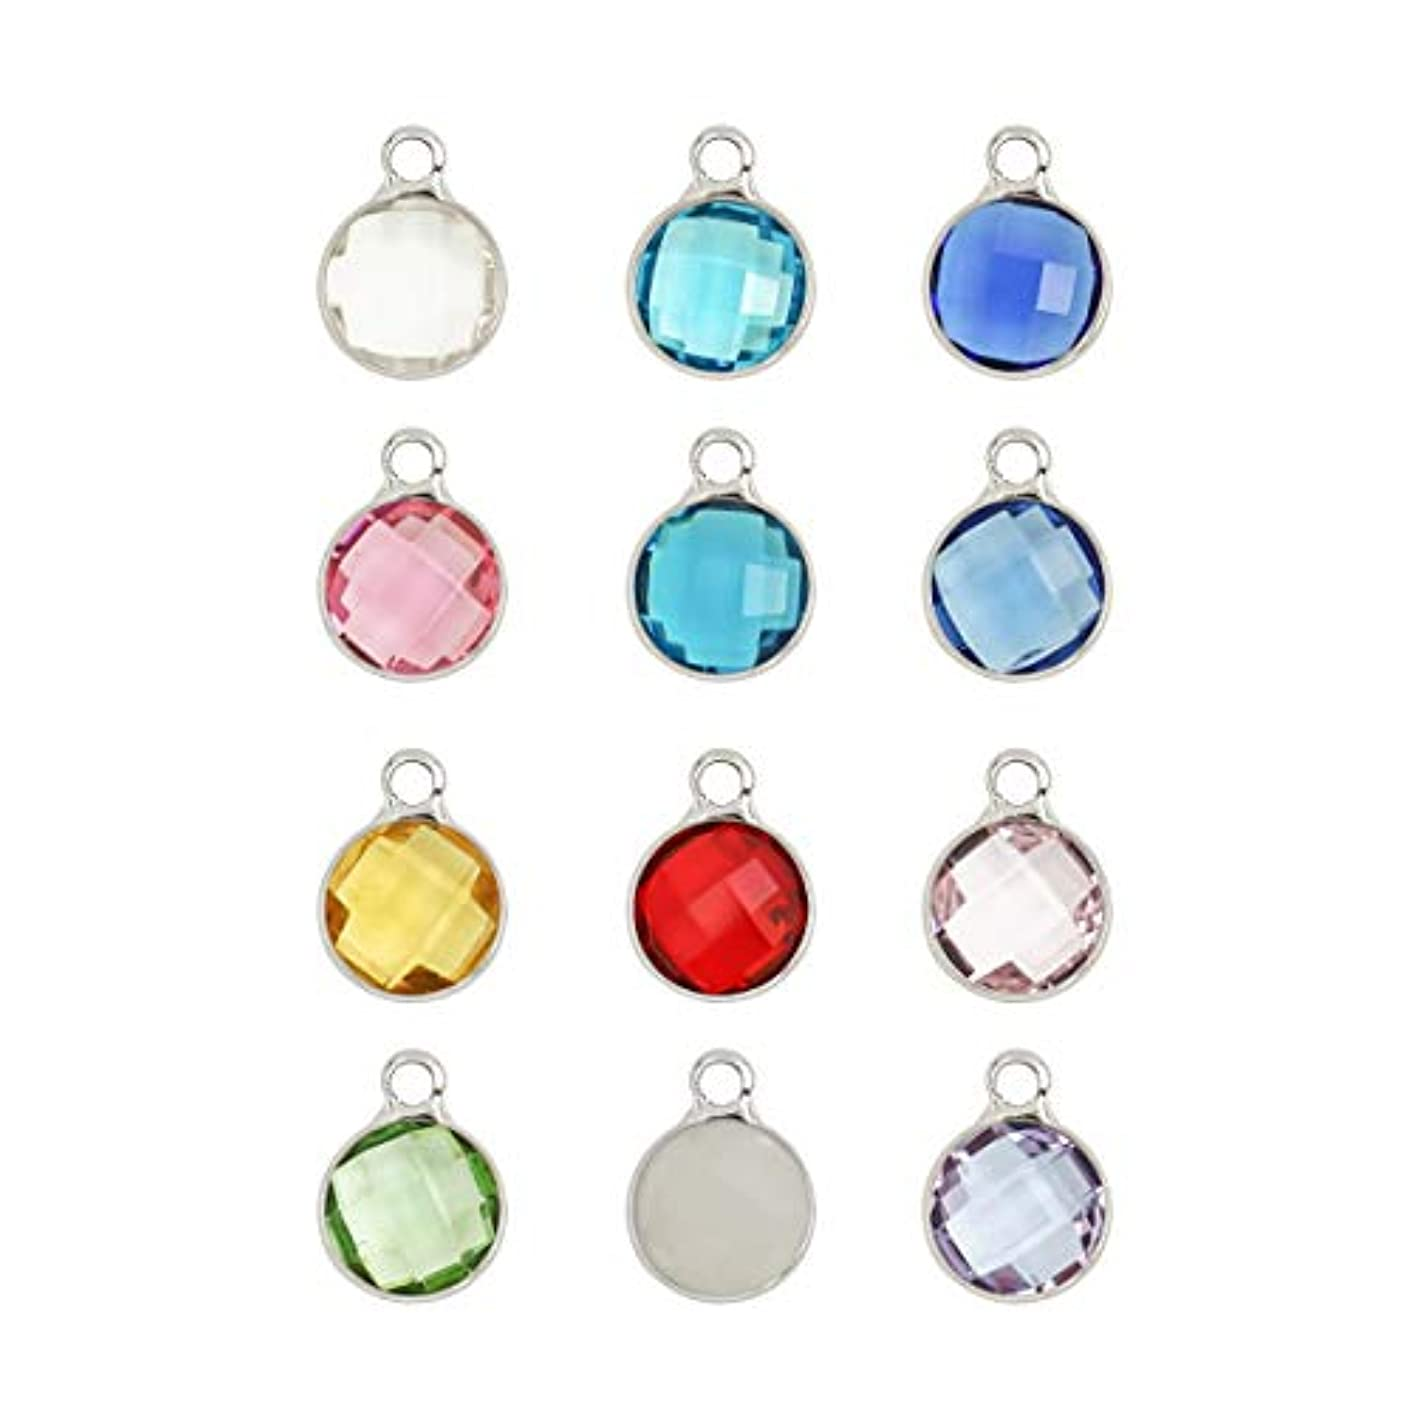 5 sets Mixed Birthstone Charms 10mm Austrian Crystal Beads Sterling Silver Plated (60pcs) for Jewelry Craft Making CCP5-S